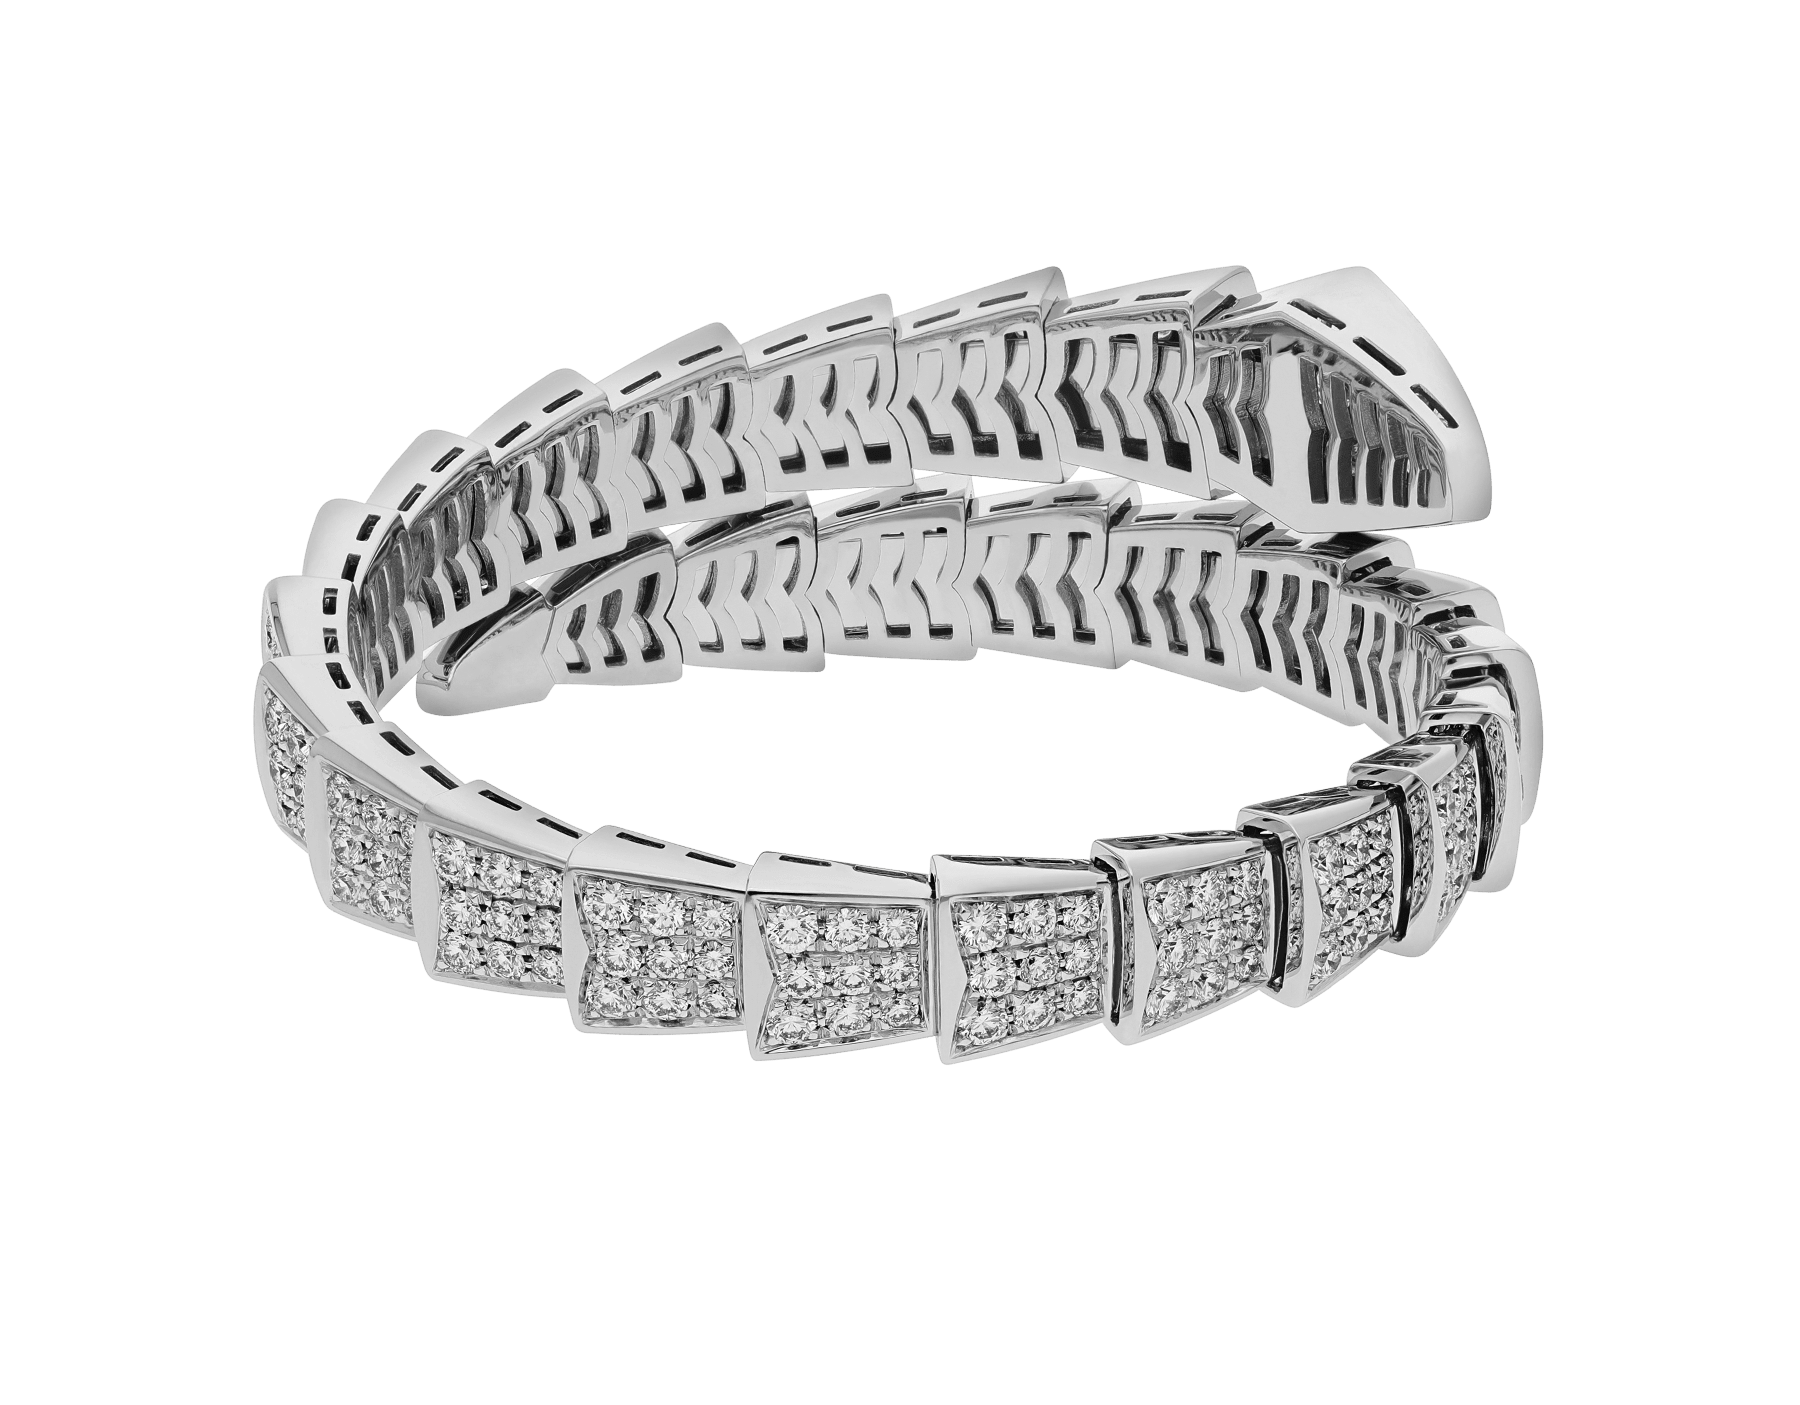 Serpenti one-coil bracelet in 18 kt white gold, set with full pavé diamonds. BR855231 image 3